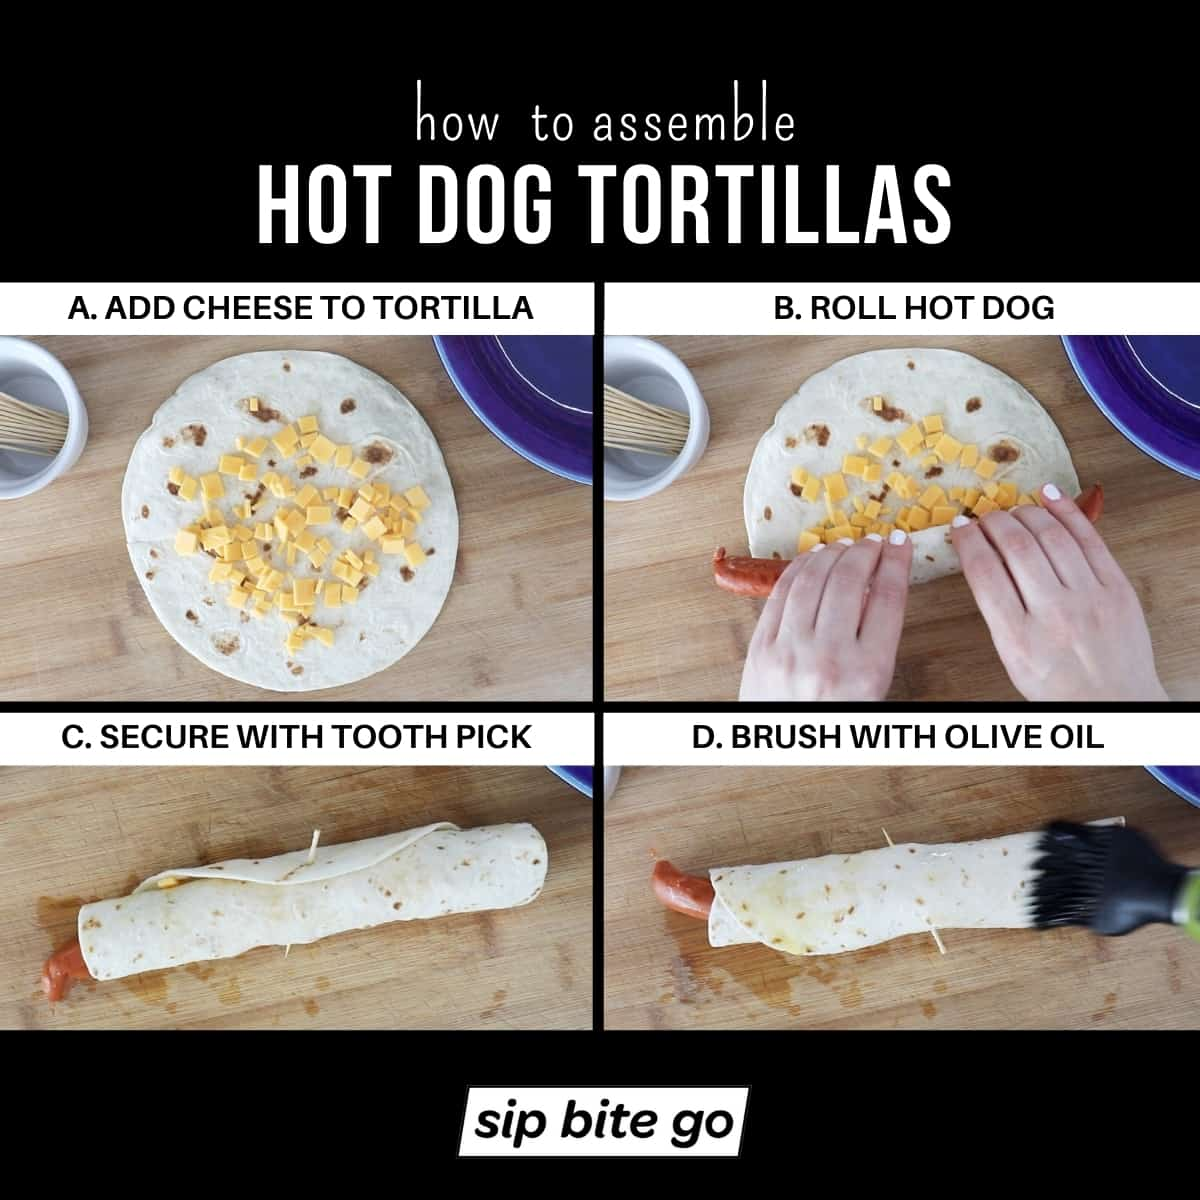 Infographic chart demonstrating how to assemble hot dog tortillas with cheese and flour tortillas.